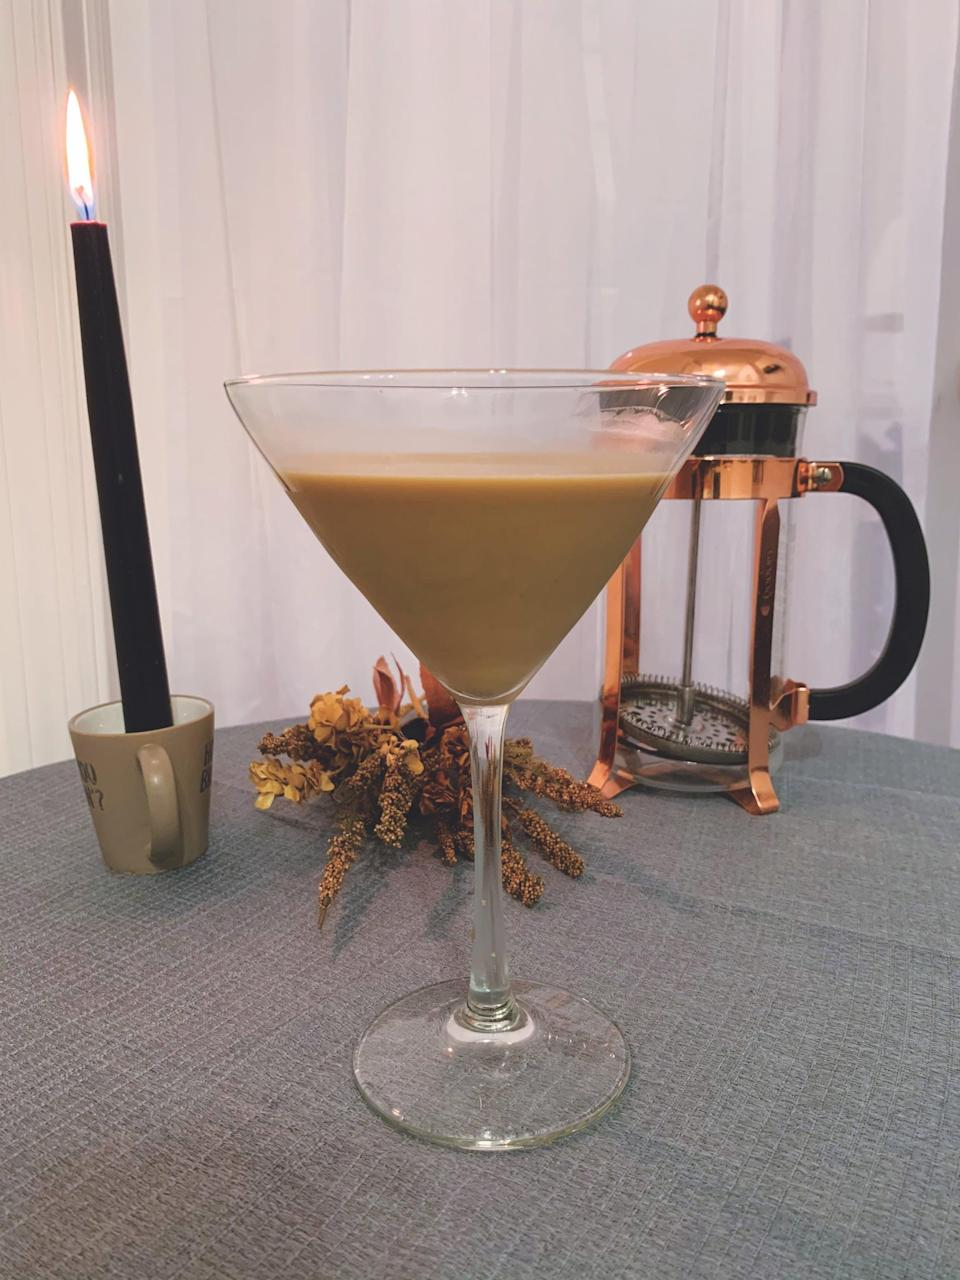 <p><b>Serves:</b> 1   <b>Prep Time:</b> 22 minutes</p> <p><b>Ingredients:</b><br> 1 1/2 ounces espresso<br> 1 ounce vodka<br> 1 teaspoon simple syrup<br> 1 ounce heavy cream</p> <p><b>Directions:</b></p> <ol> <li>Brew espresso and let it sit for 20 minutes to cool.</li> <li>Pour the espresso over ice in a rocks glass and give it a stir to cool it further.</li> <li>Add vodka and simple syrup.</li> <li>Add the heavy cream and stir well.</li> </ol>